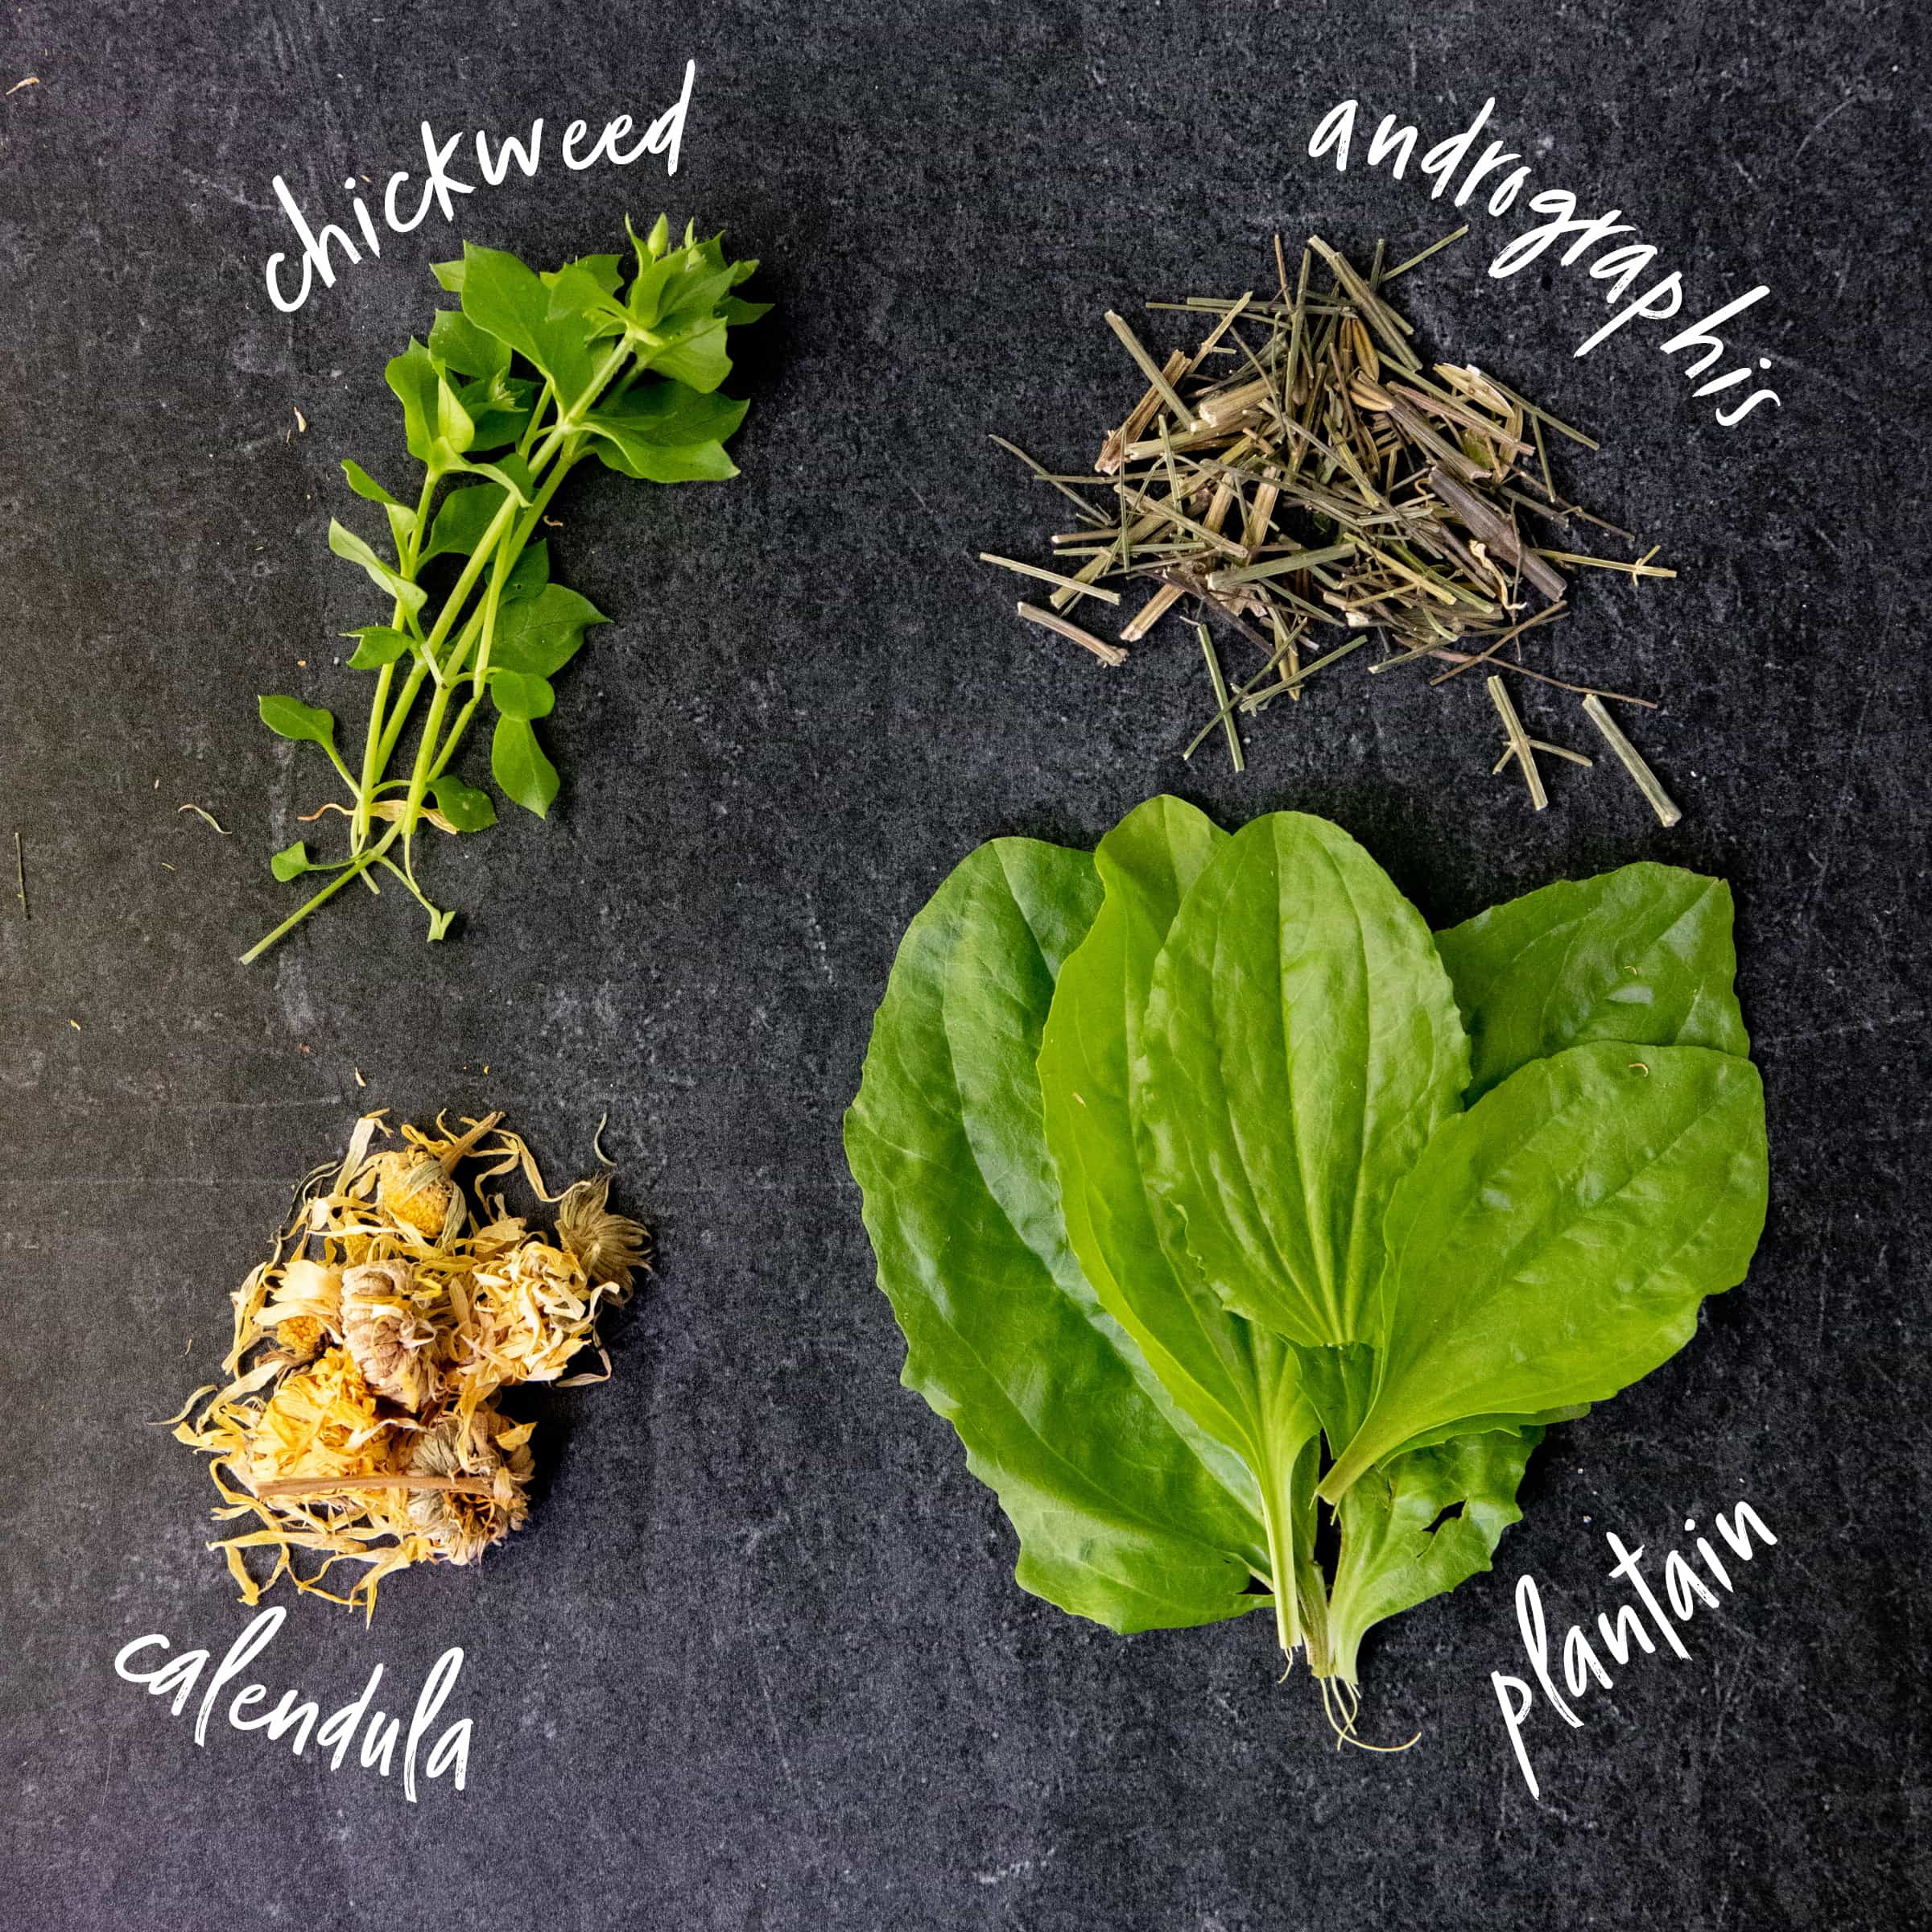 The herbs for black drawing salve laid out on a board and labeled - chickweed, andrigraphis, calendula, and plaintain.